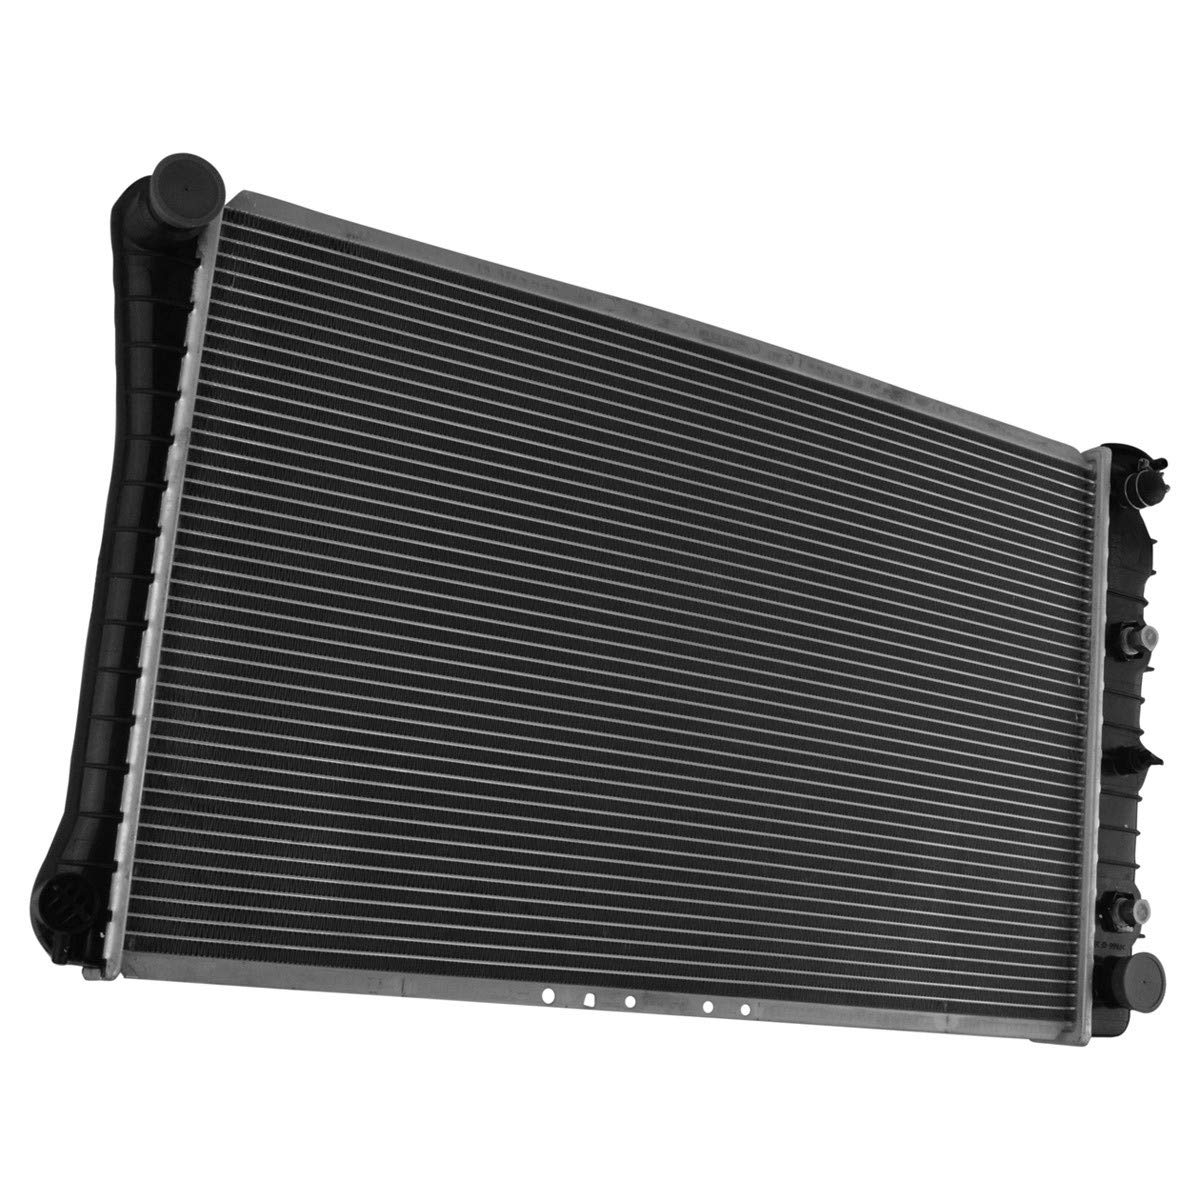 Radiator Assembly Plastic Tank Aluminum Core for Chevy Buick Pontiac Oldsmobile